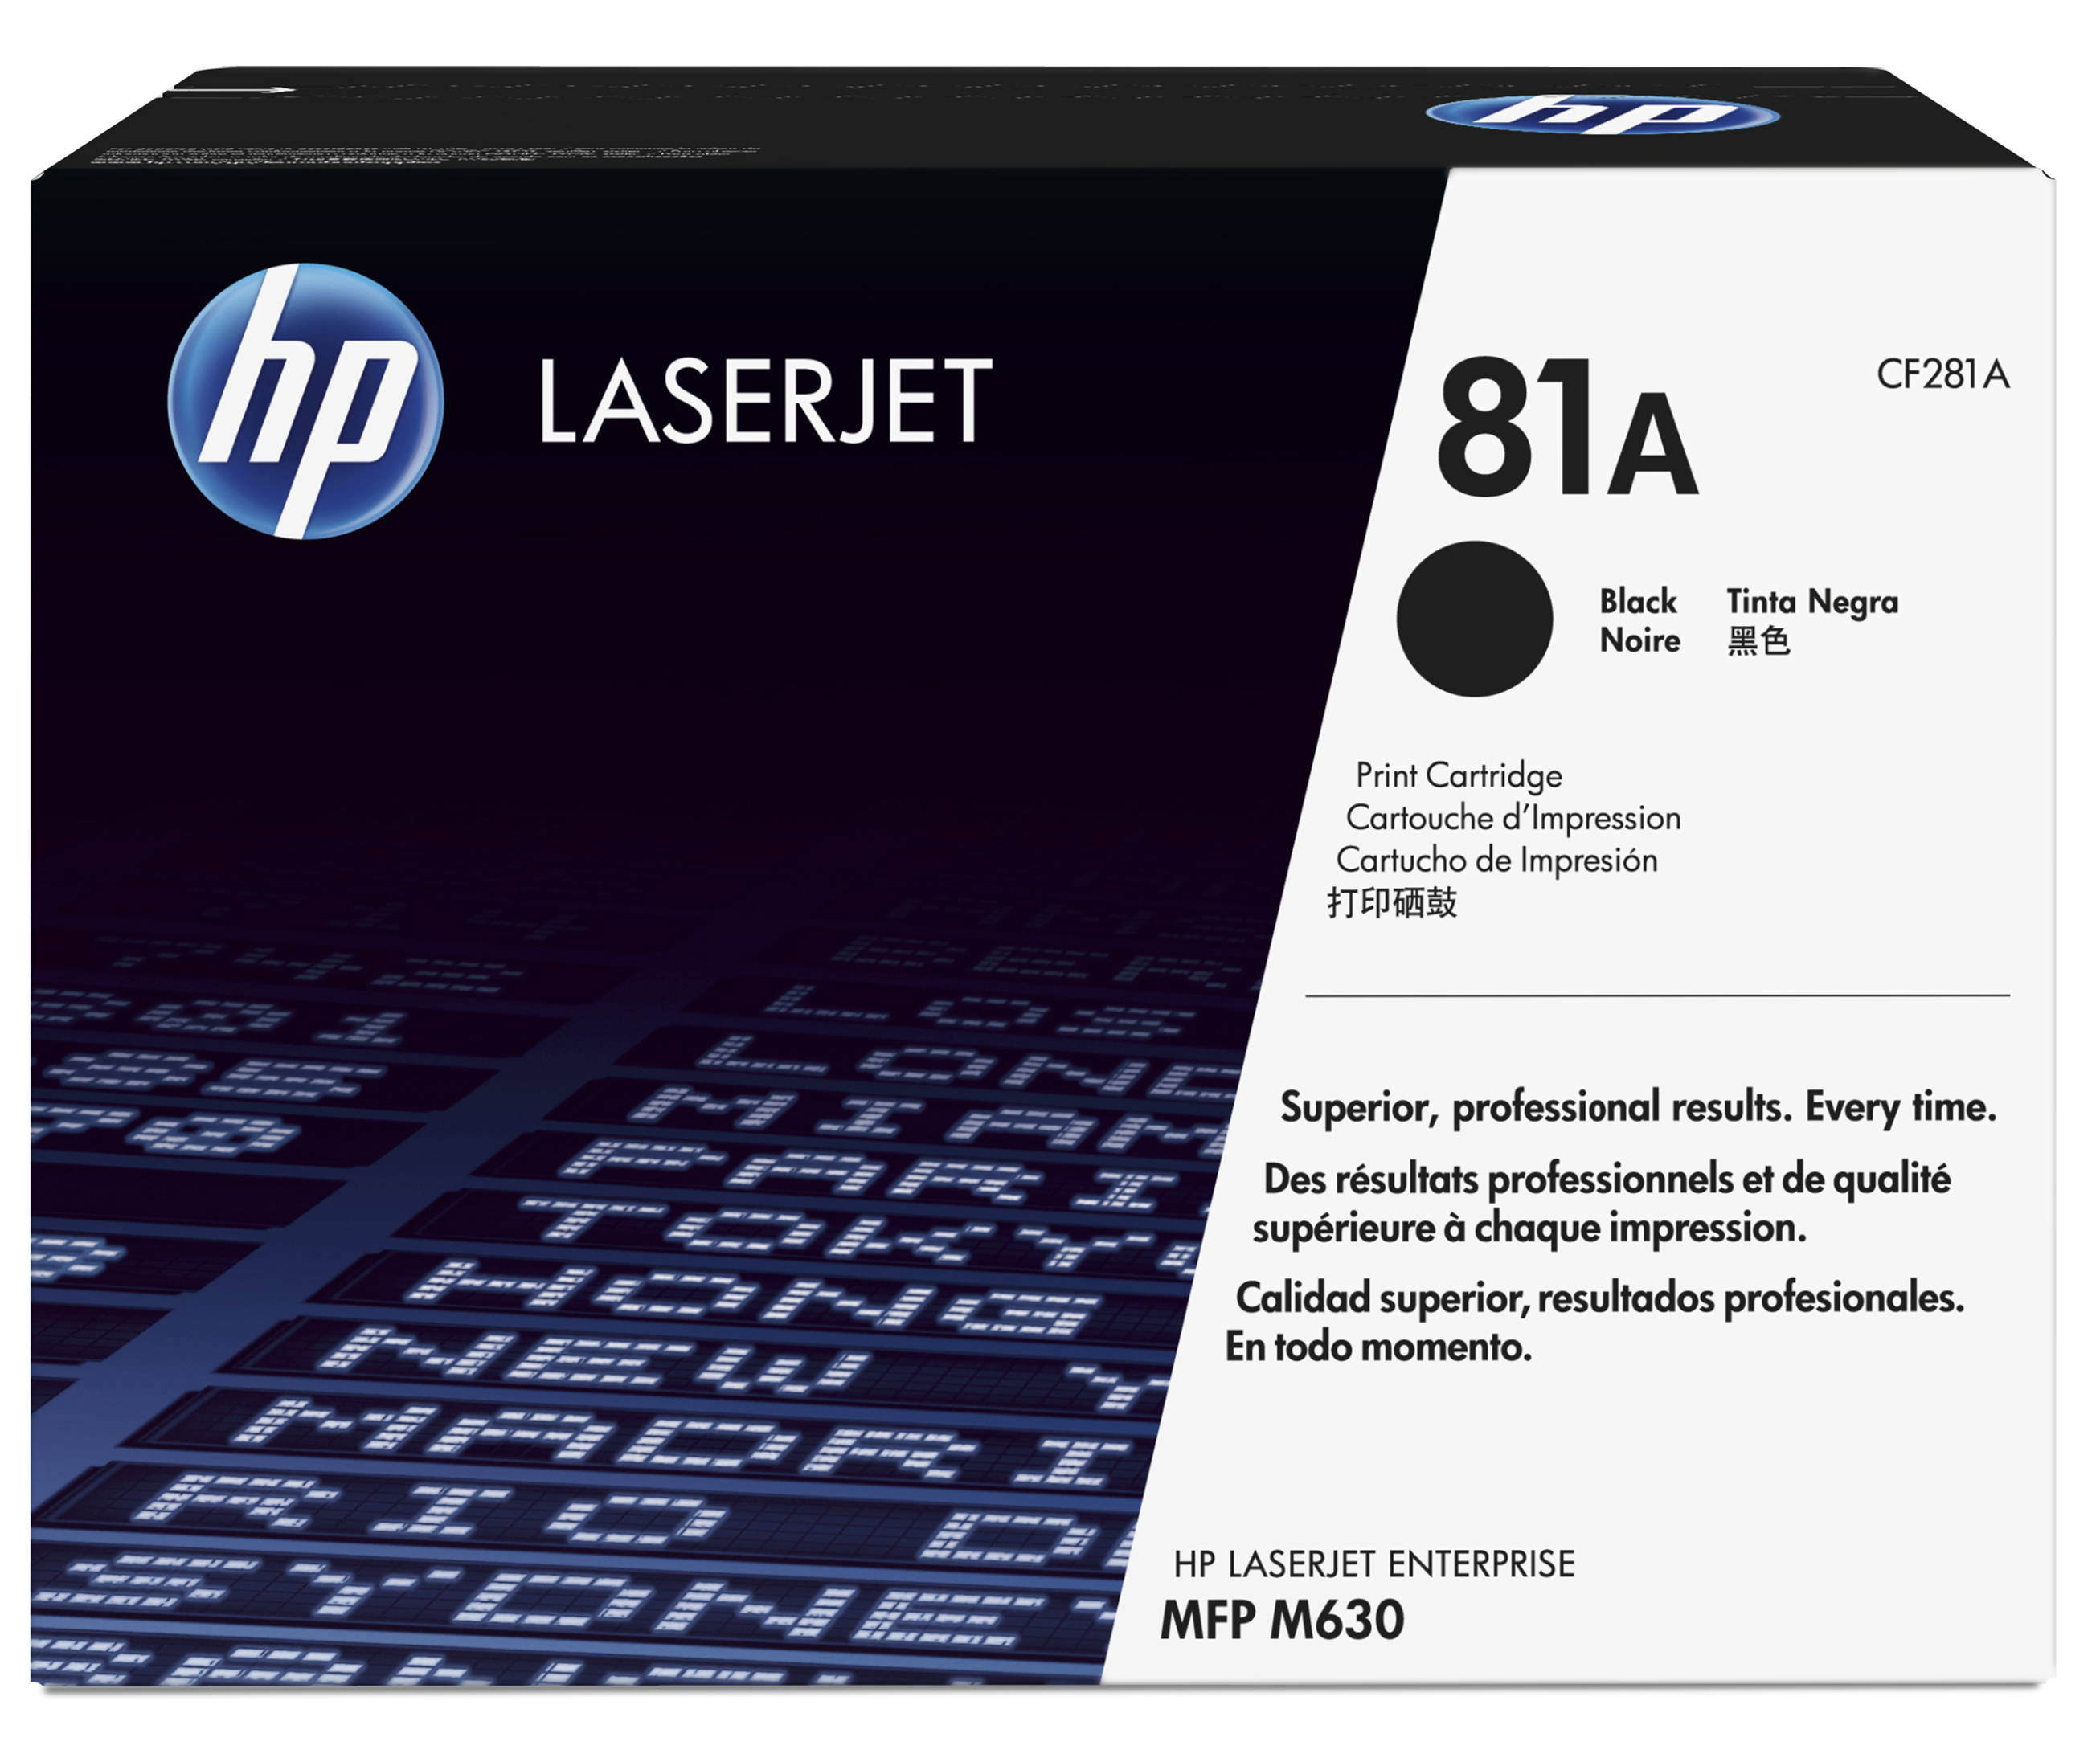 Hp - Laserjet Supply (pl5t) Lvs  Toner Cartridge 81a Black           .                                   Cf281a